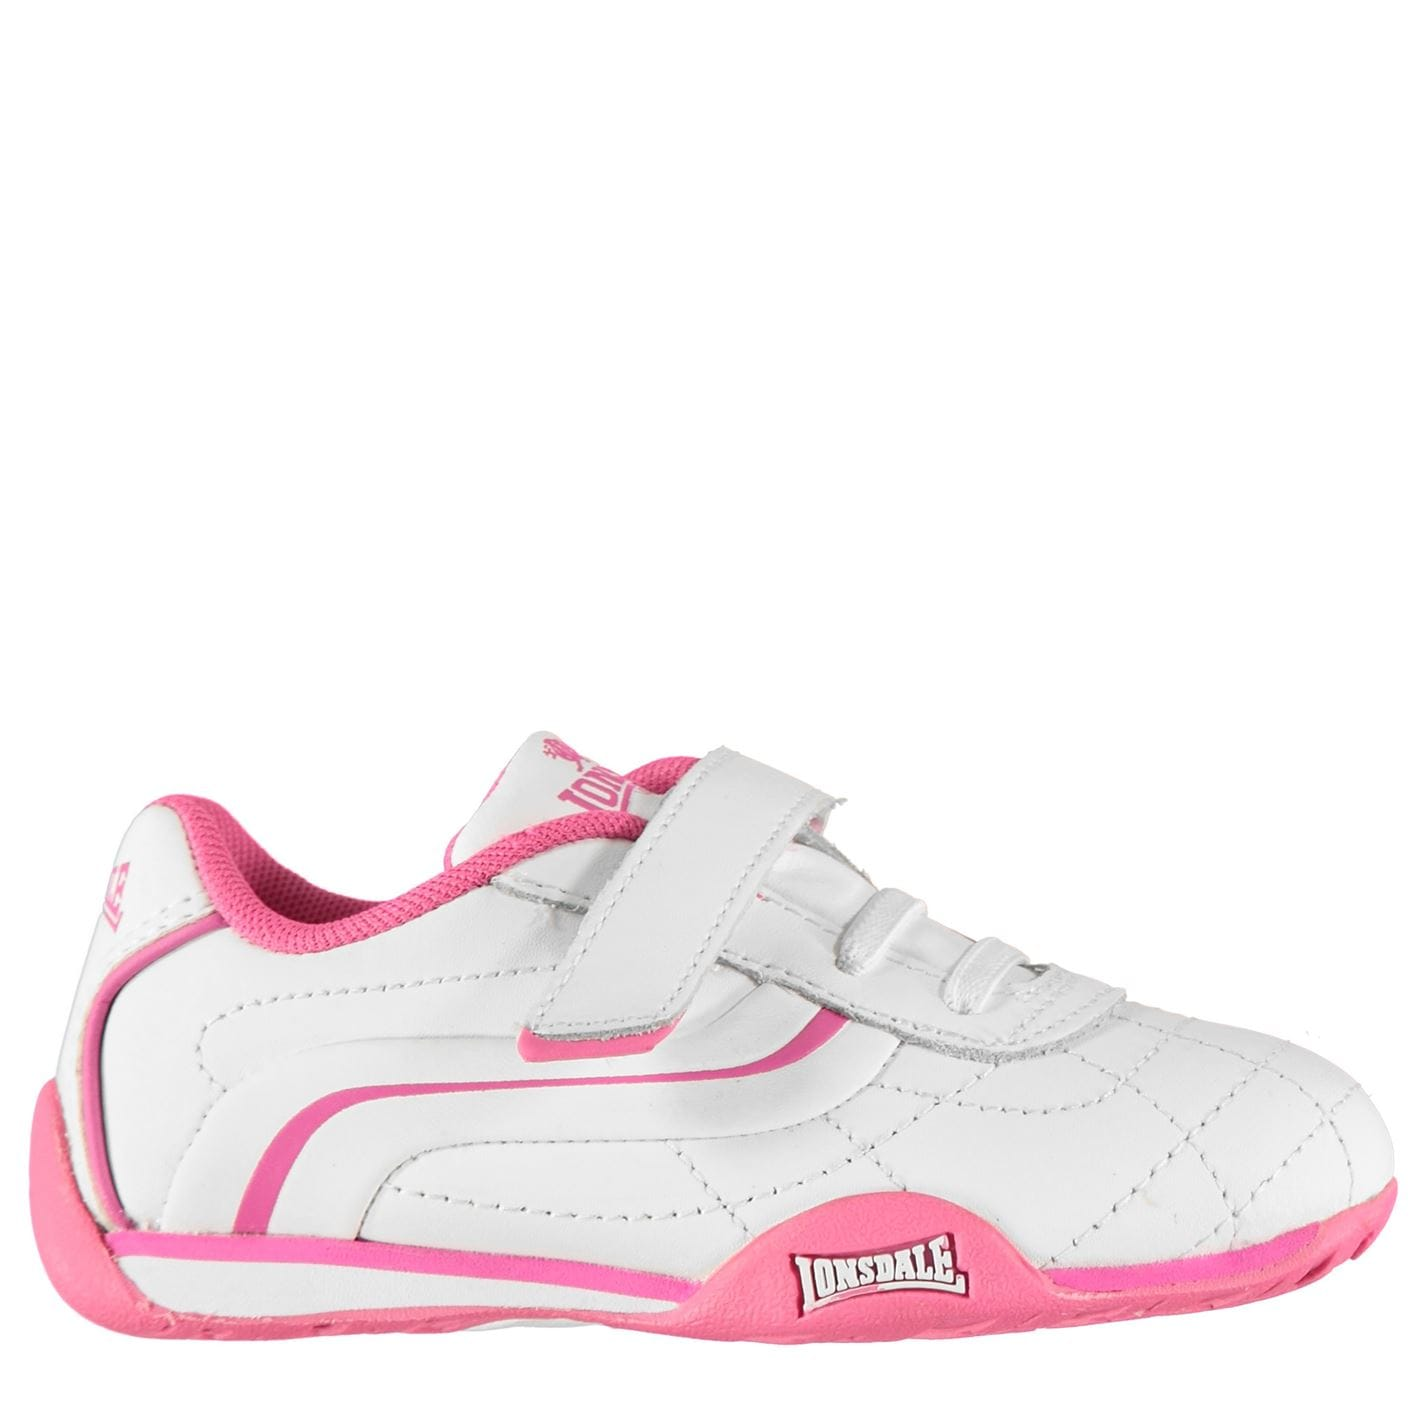 Lonsdale Camden Infants Trainers White/Cerise